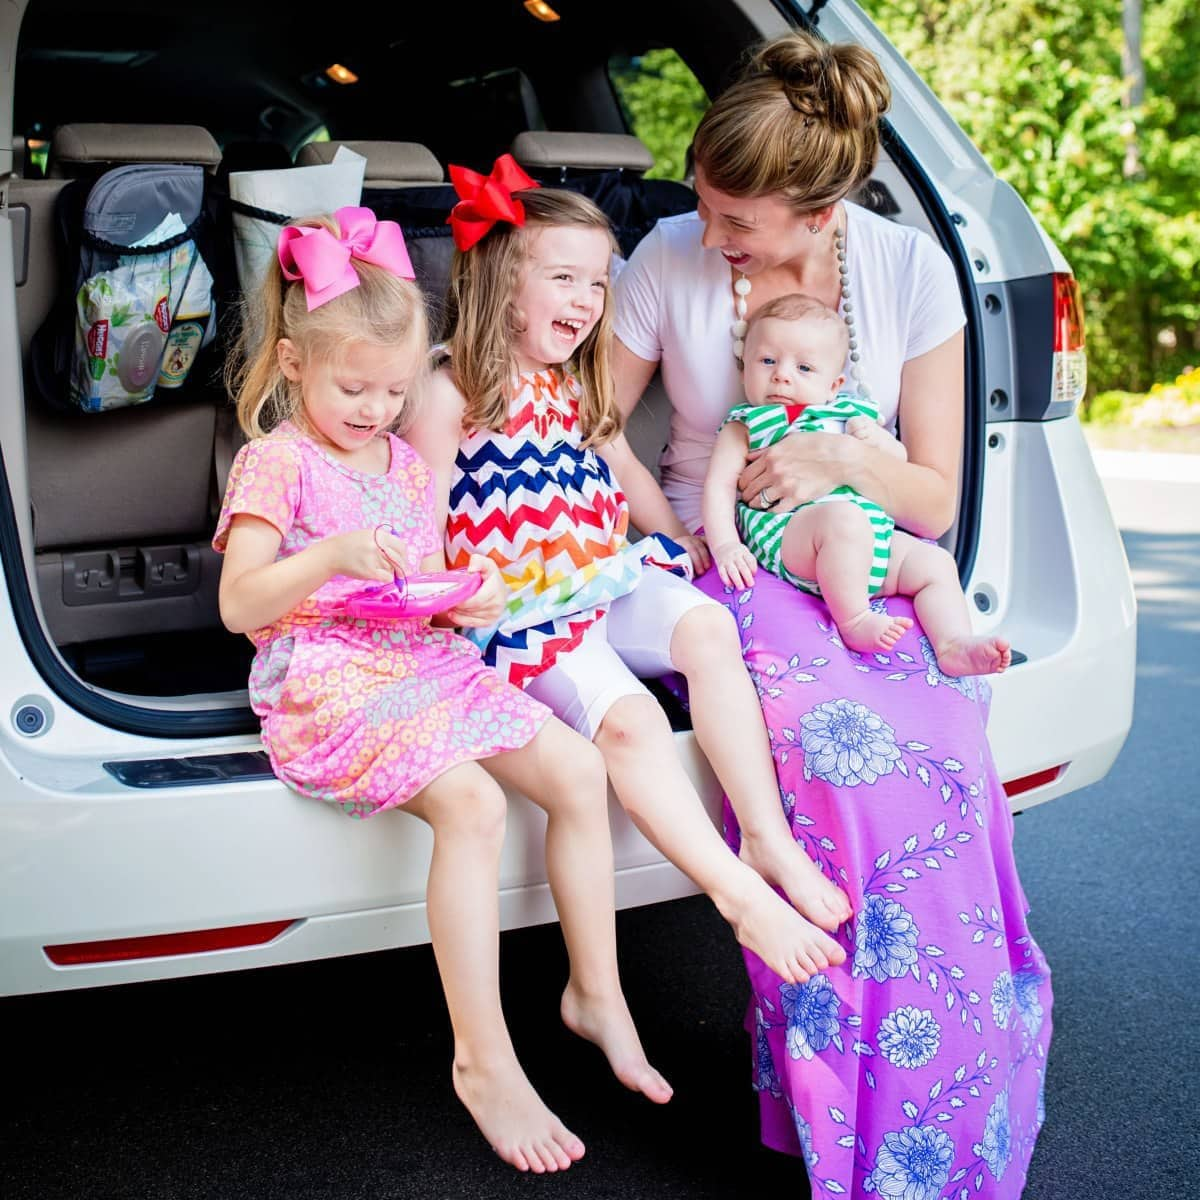 4f10c73f8f50 16 Items Every Mom Needs In The Car » Daily Mom